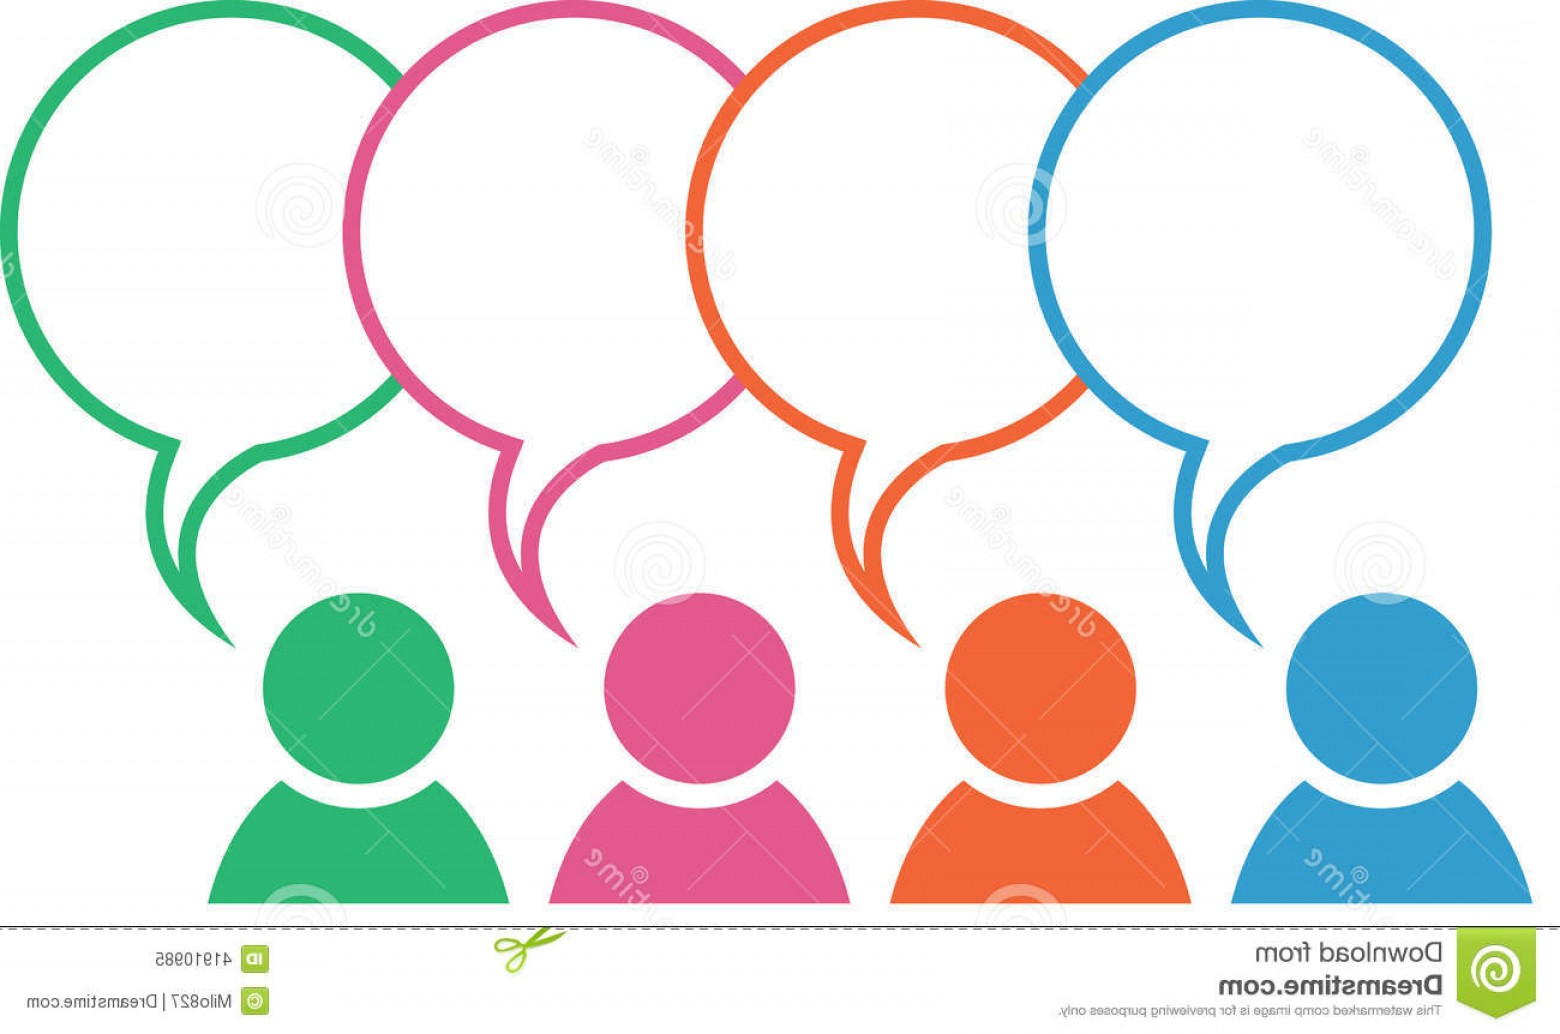 Vector Group Of Hands Overlapped: Stock Illustration Group Icon Speech Bubble Colors Overlapping Different Blank Bubbles Image